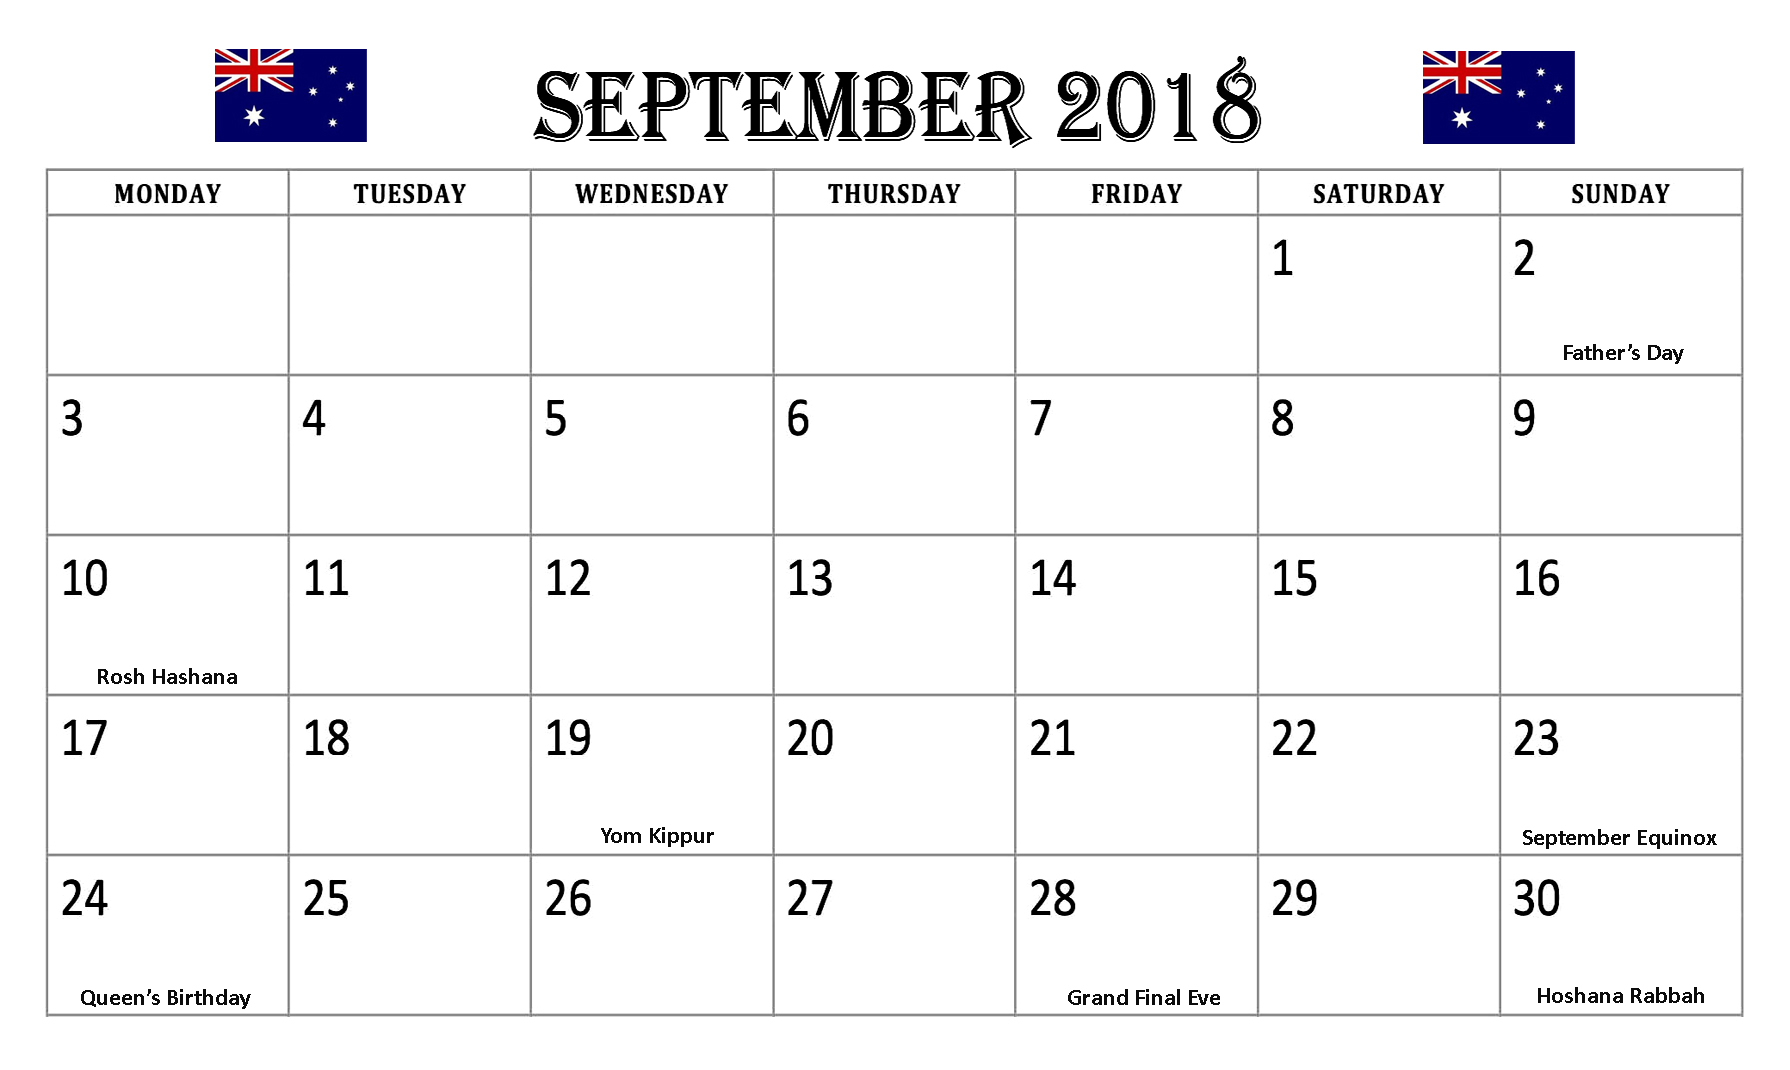 September 2018 Calendar Australia With Holidays